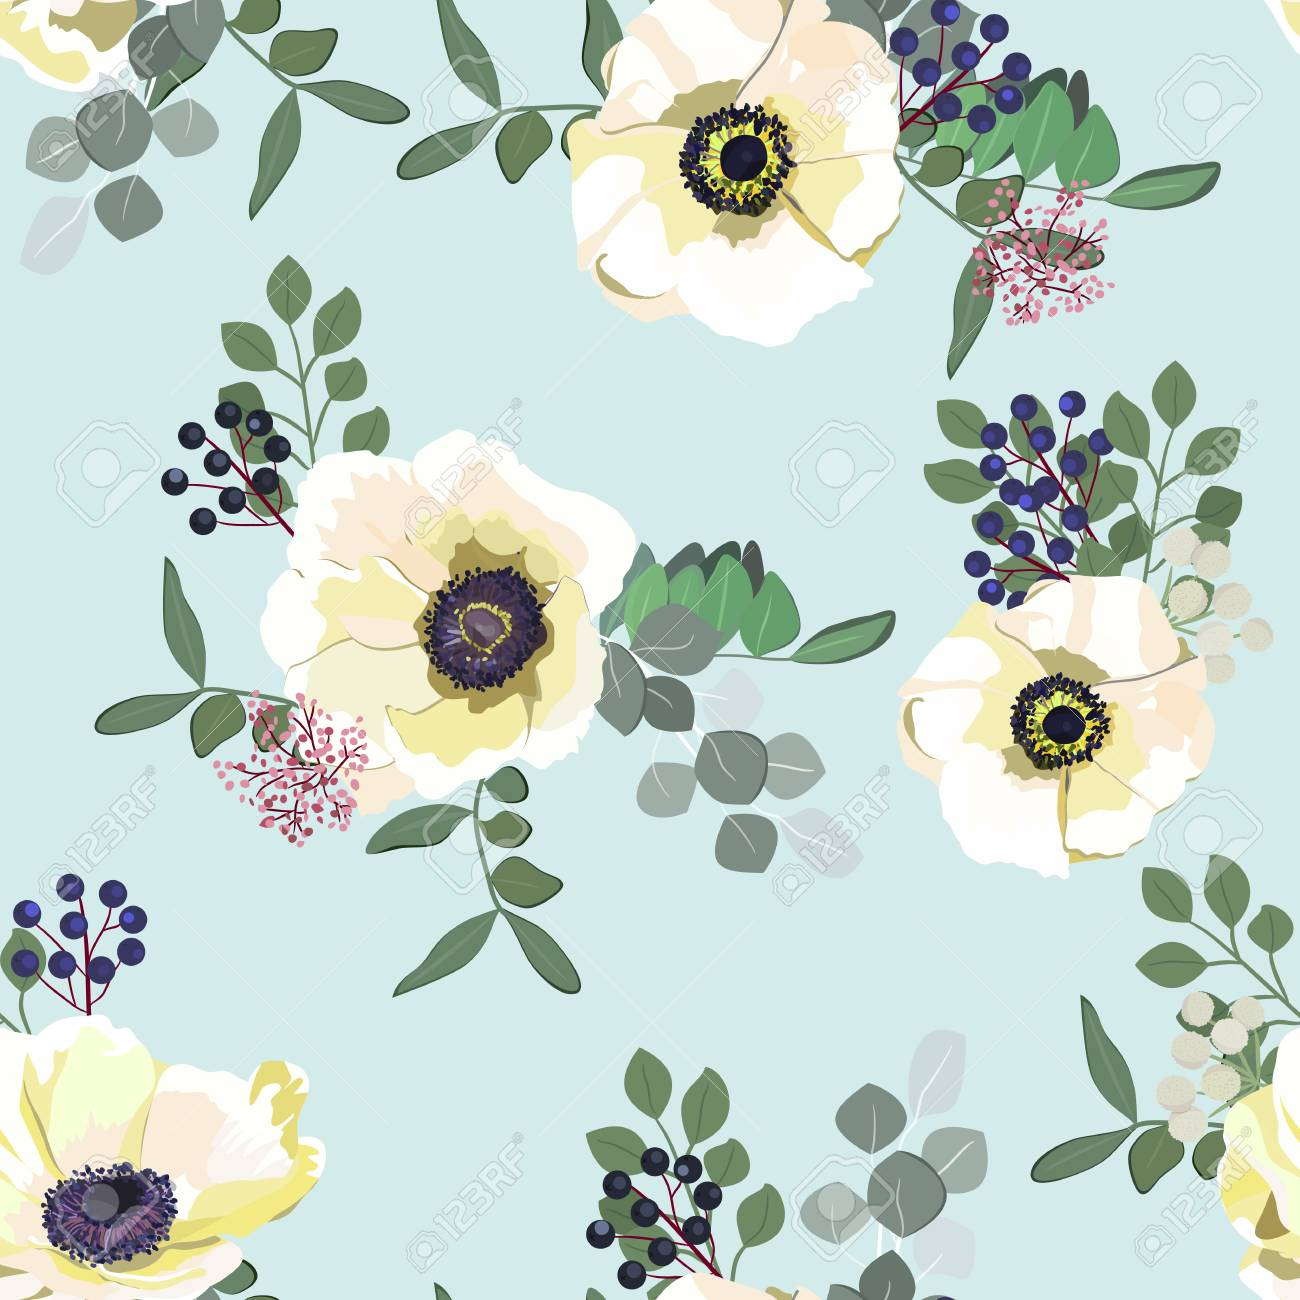 White Anemone Flowers Seamless Pattern Berries And Greenery Royalty Free Cliparts Vectors And Stock Illustration Image 94684091